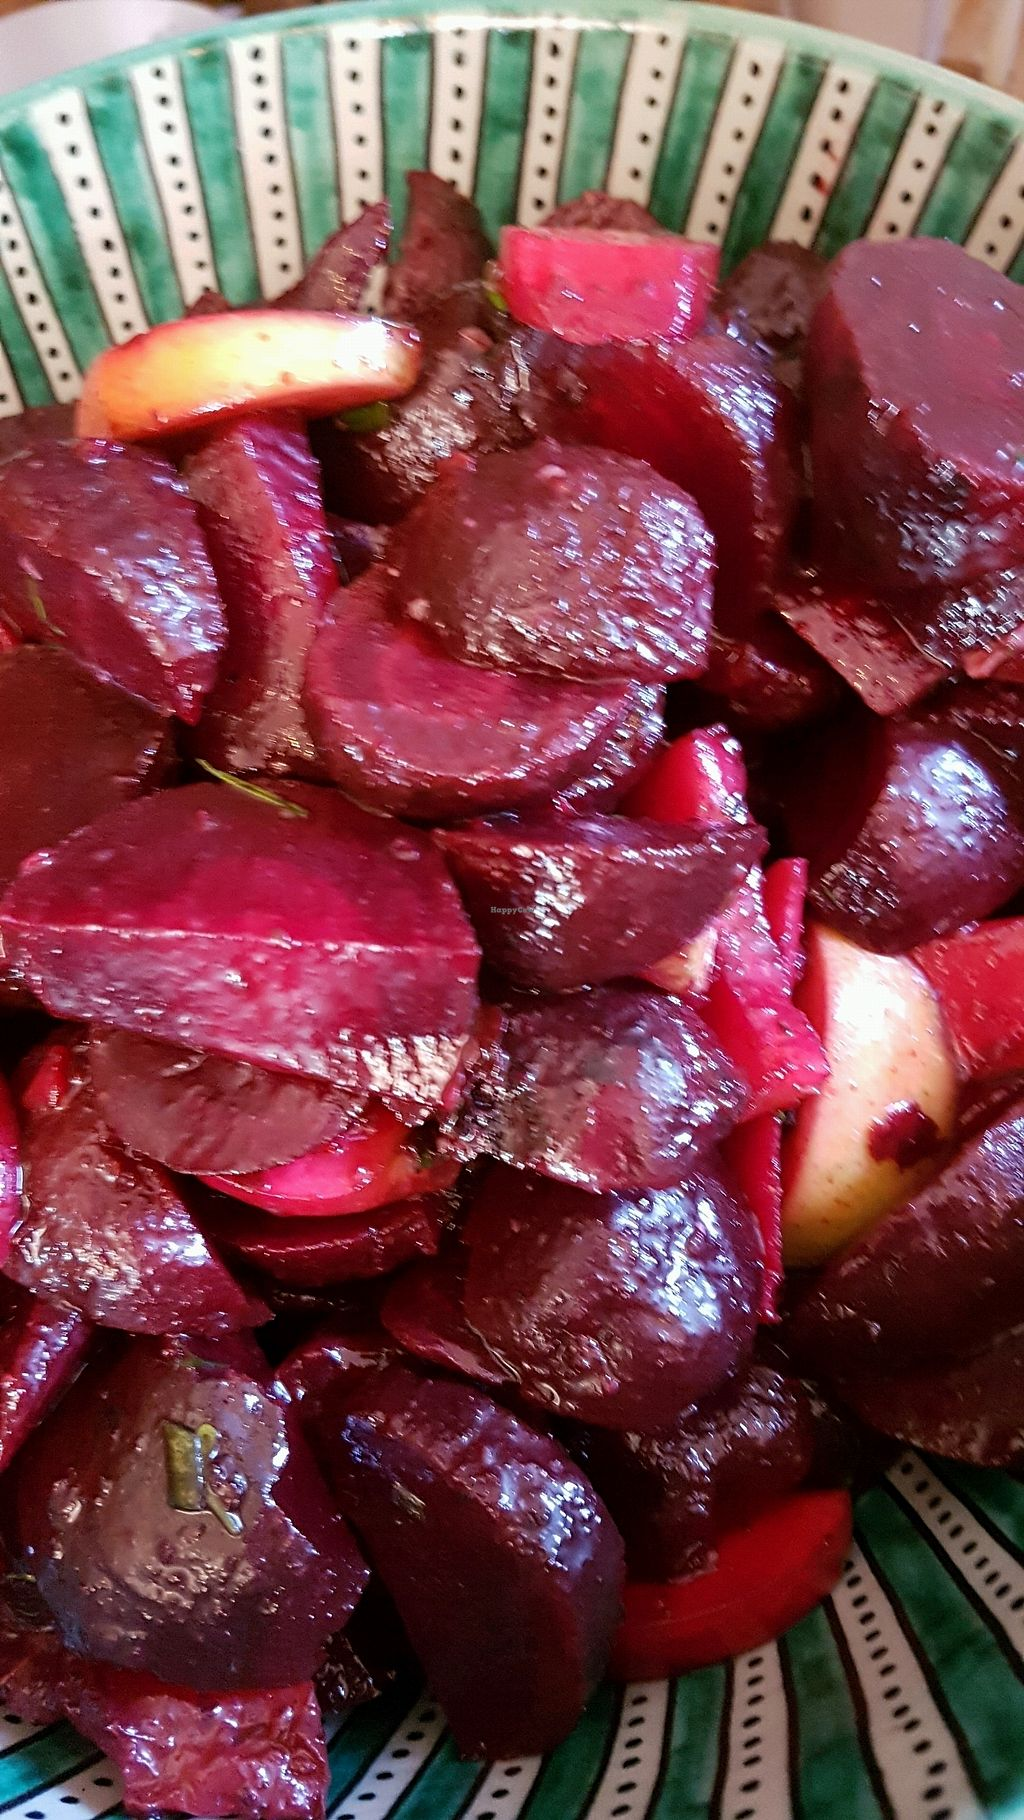 """Photo of Lior's Kitchen at Tierra Verde  by <a href=""""/members/profile/LiorBerman"""">LiorBerman</a> <br/>beetroot and Apple salad ? <br/> September 27, 2017  - <a href='/contact/abuse/image/101716/309166'>Report</a>"""